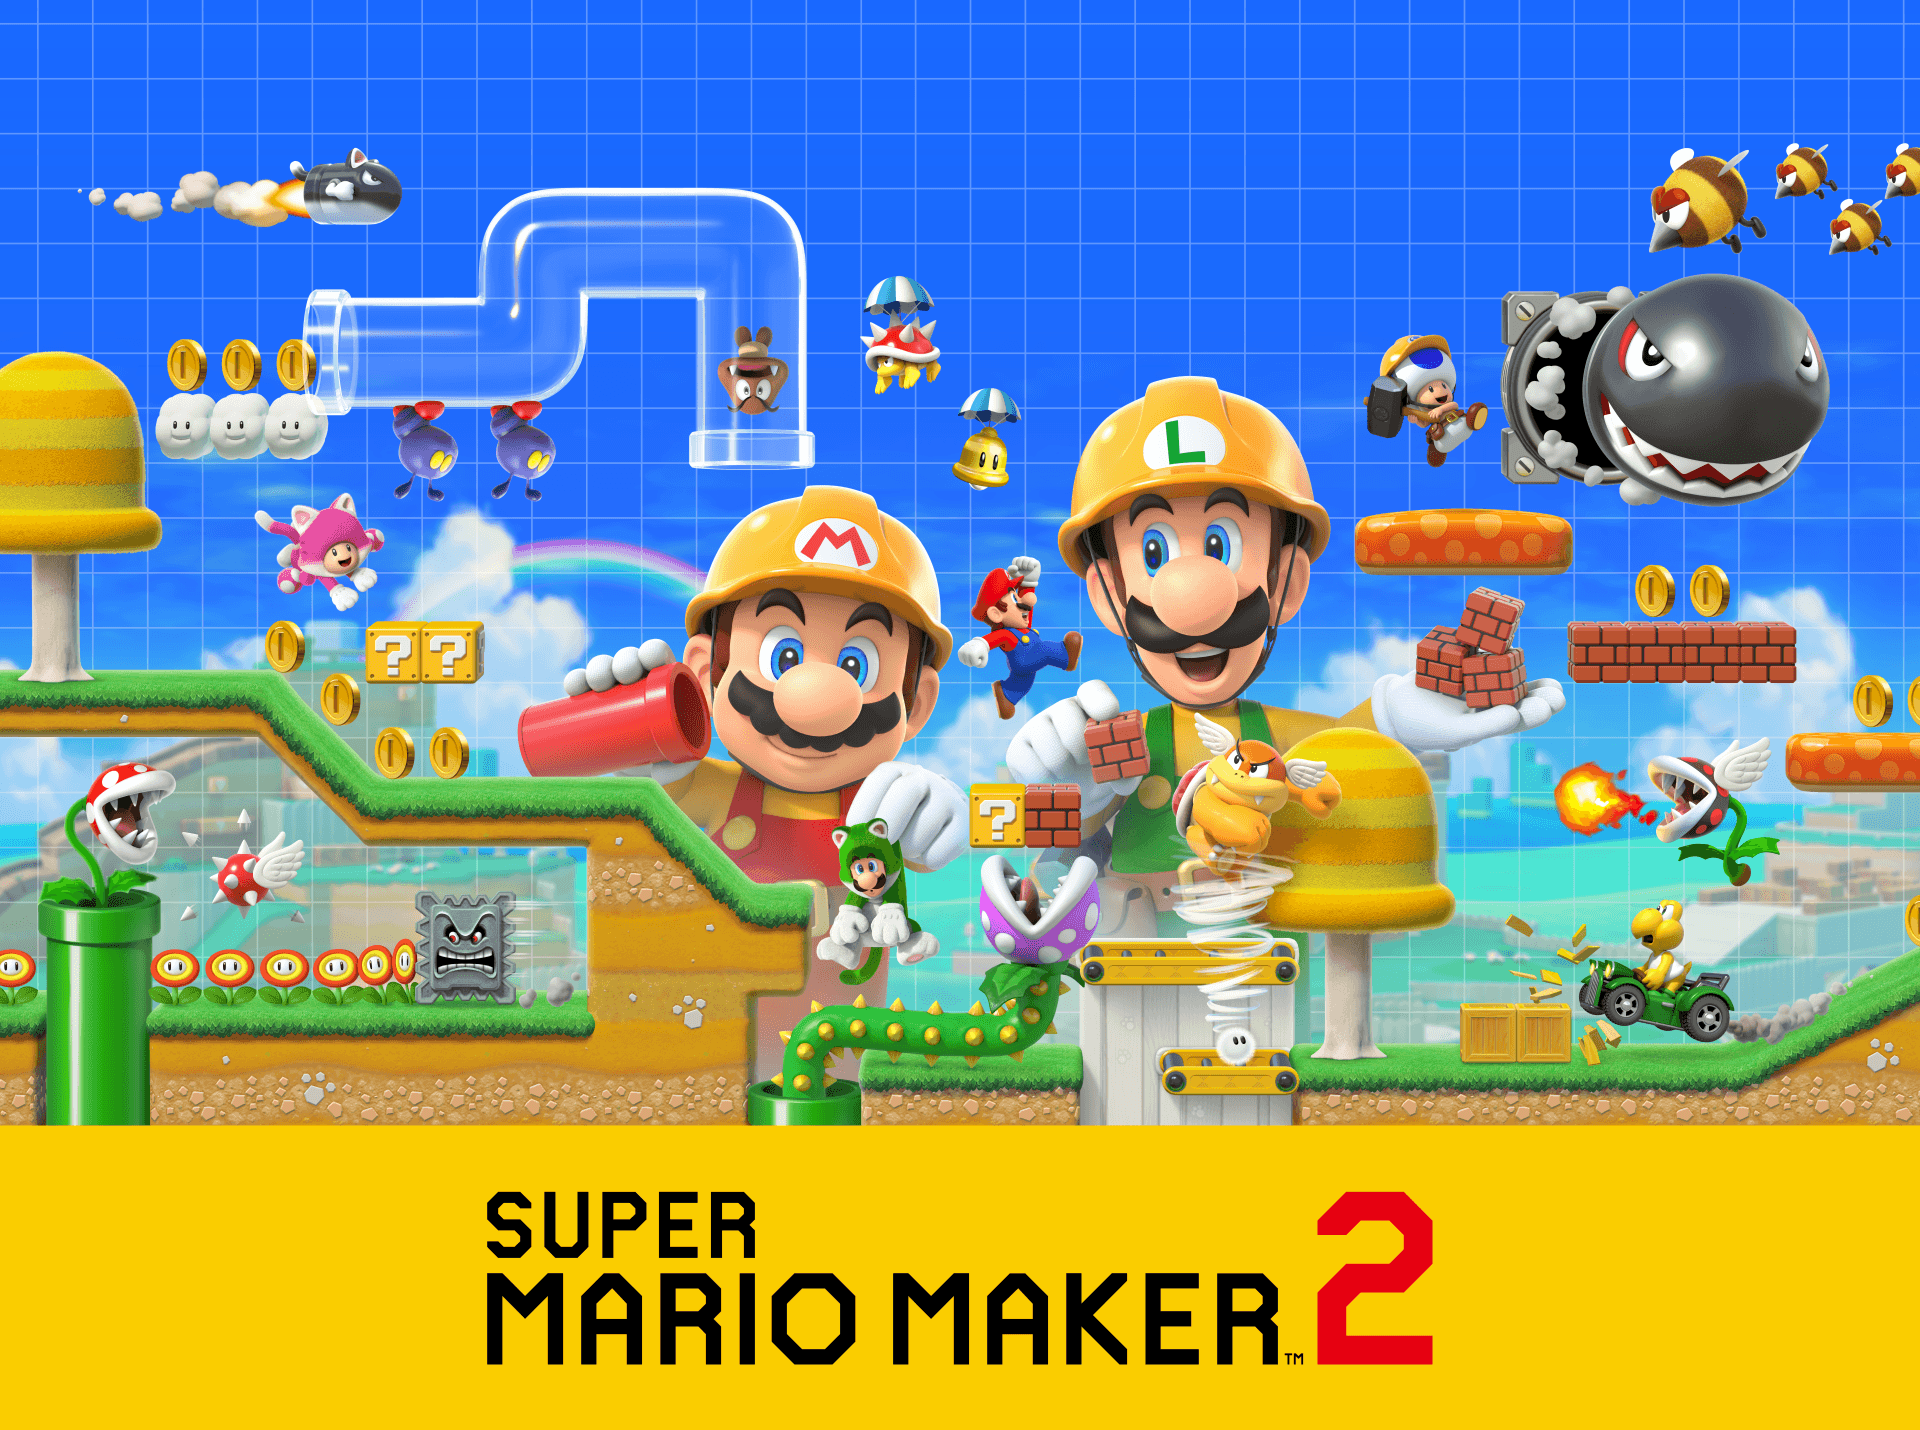 Super Mario Maker 2 Wallpapers Wallpaper Cave